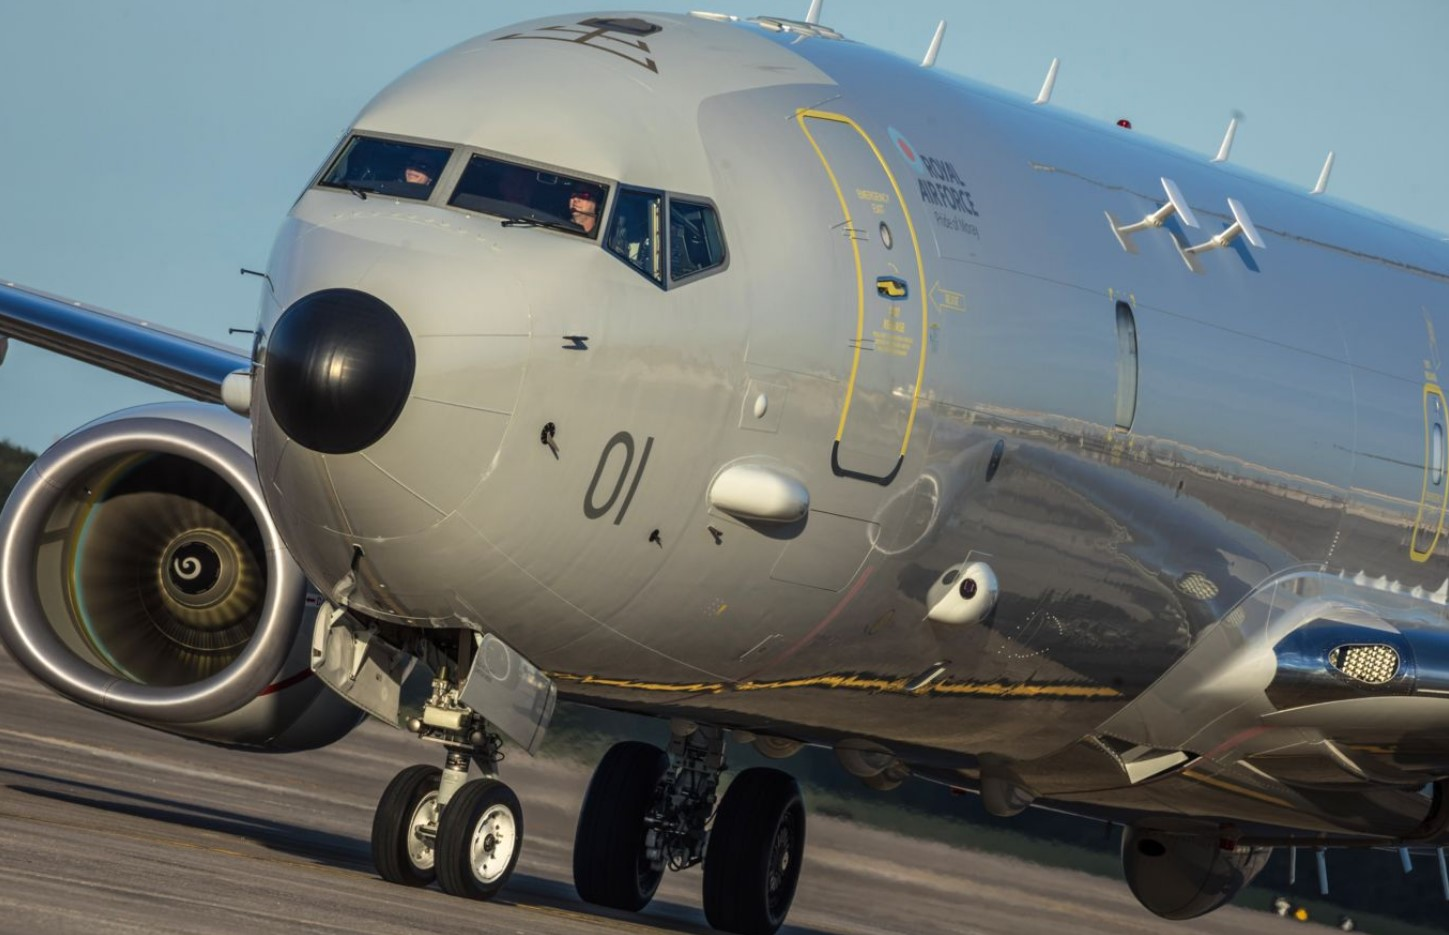 https://defbrief.com/wp-content/uploads/2019/11/Royal-Air-Force-receives-first-submarine-hunting-P-8A-Poseidon-aircraft.jpg